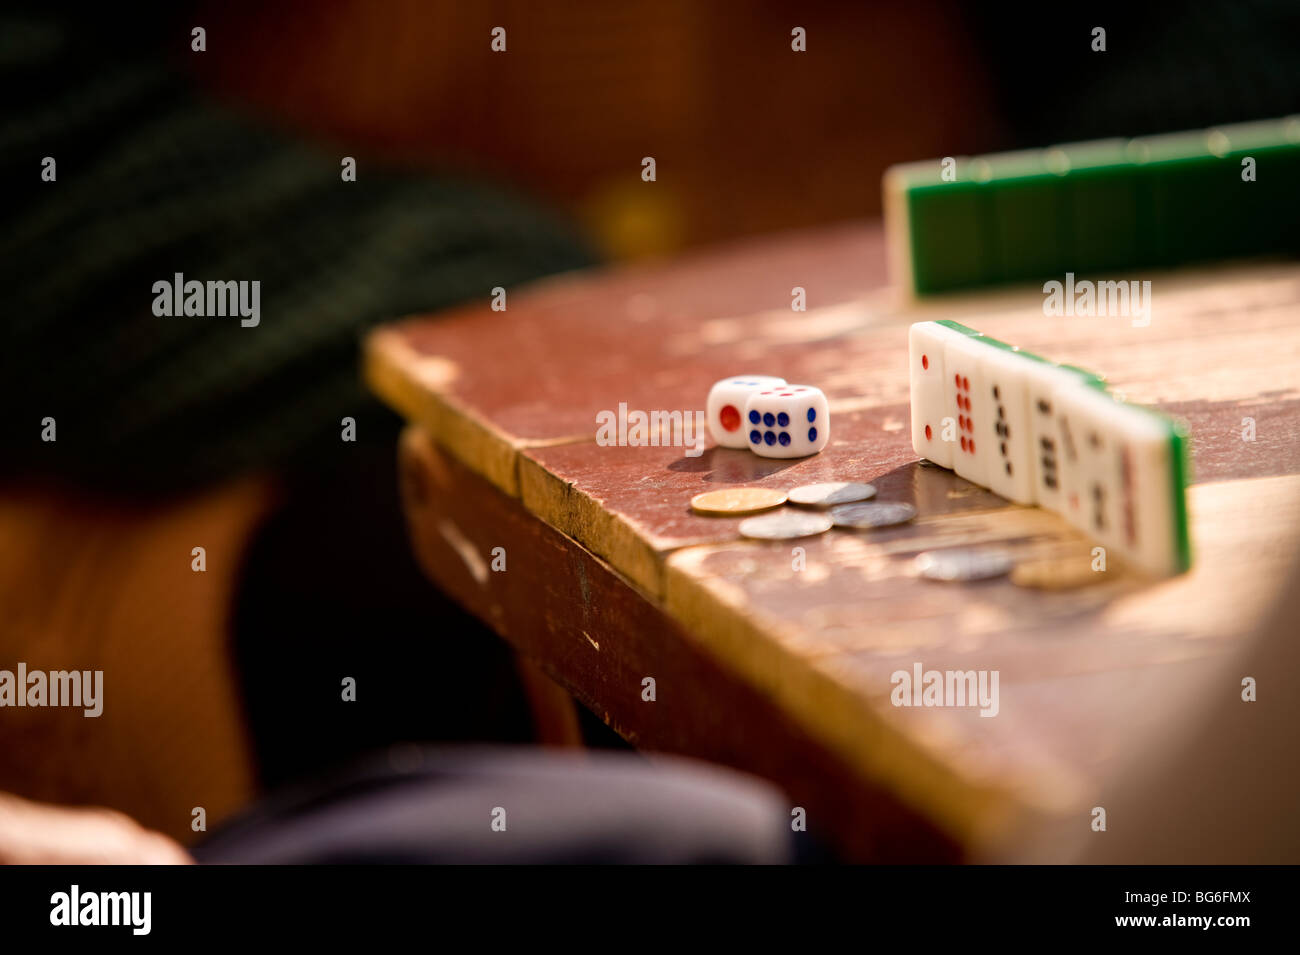 Jeu de Domino, la vieille ville, Shanghai, Chine Photo Stock